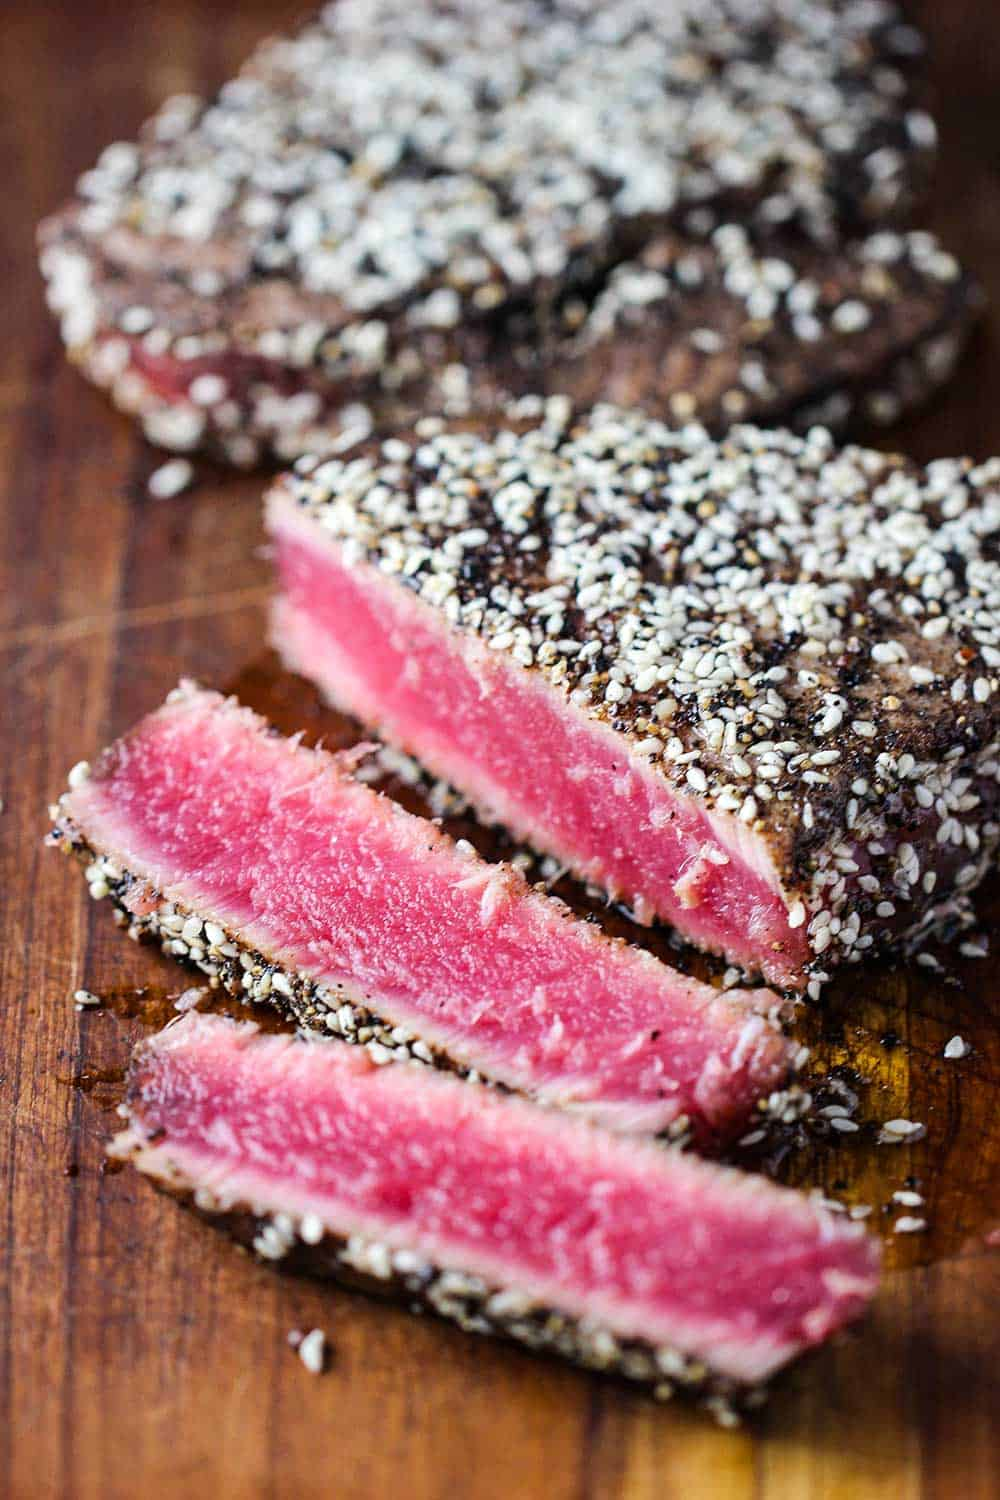 Seared peppercorn tuna steaks the have been sliced on a cutting board with bright pink center.